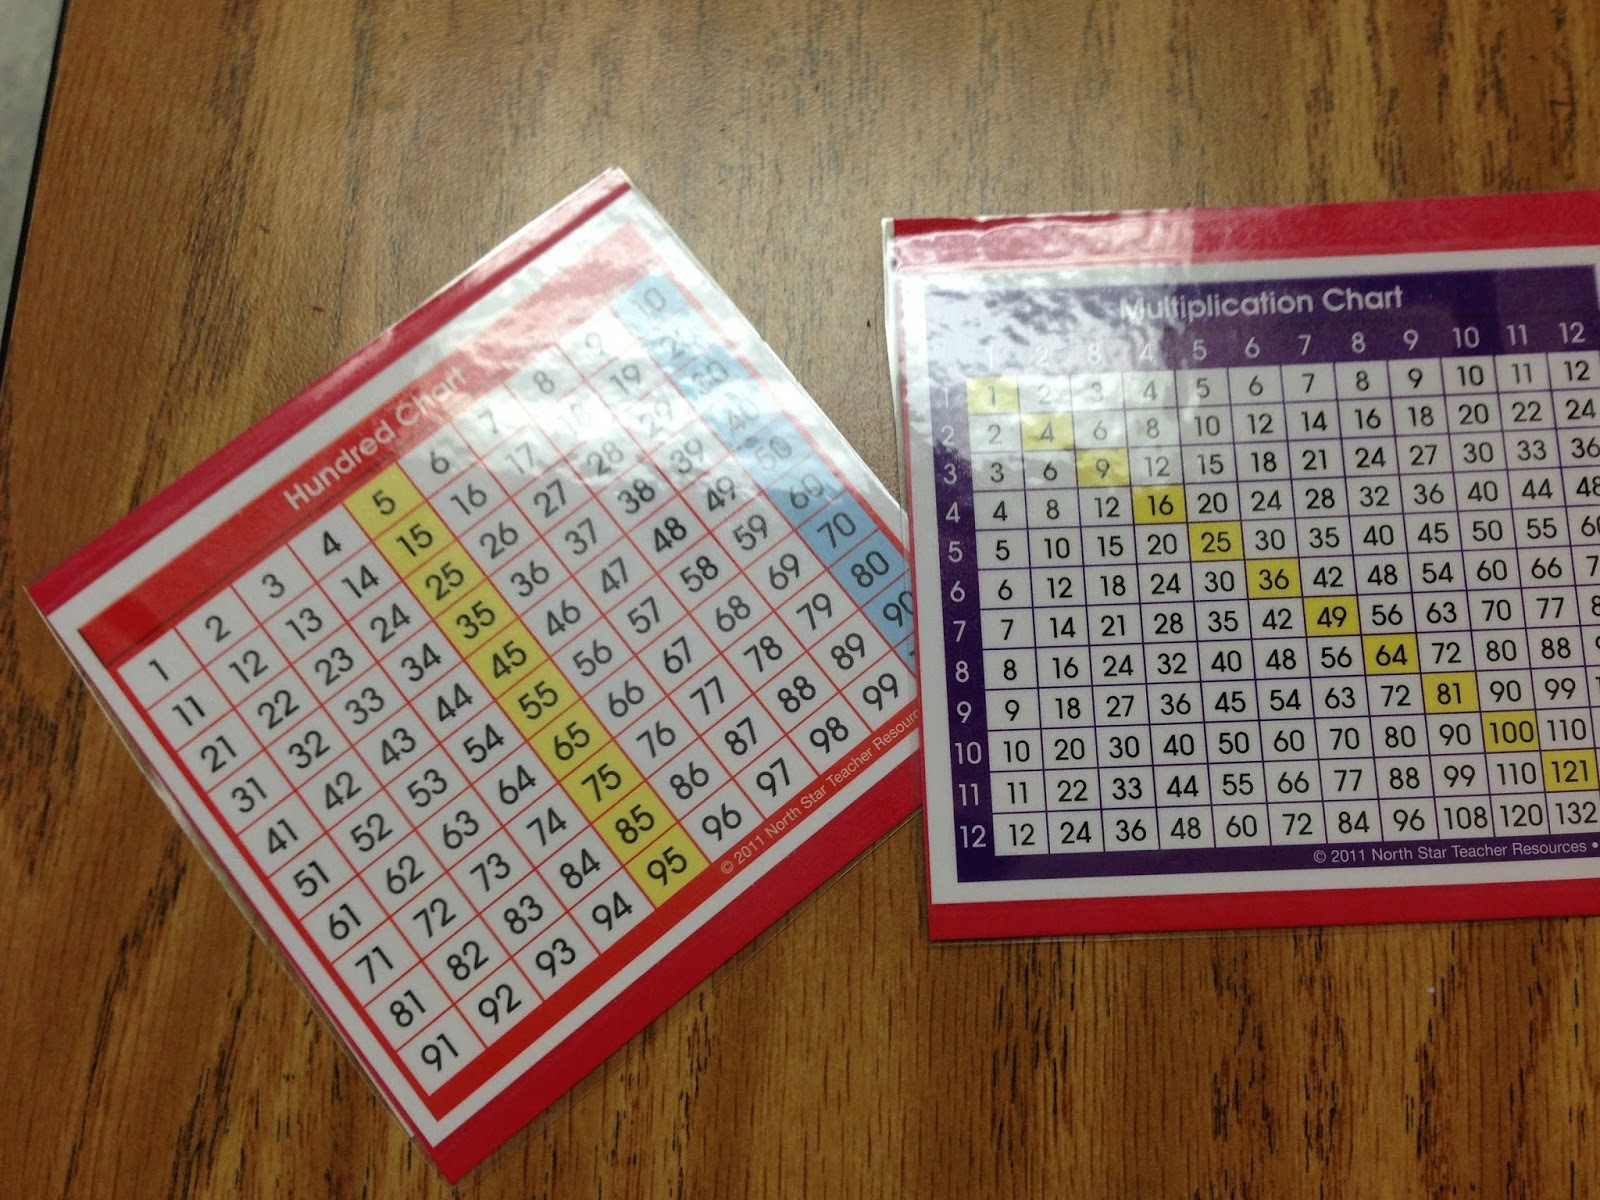 Multiplication Chart Up To 48 One side is a hundred chart.